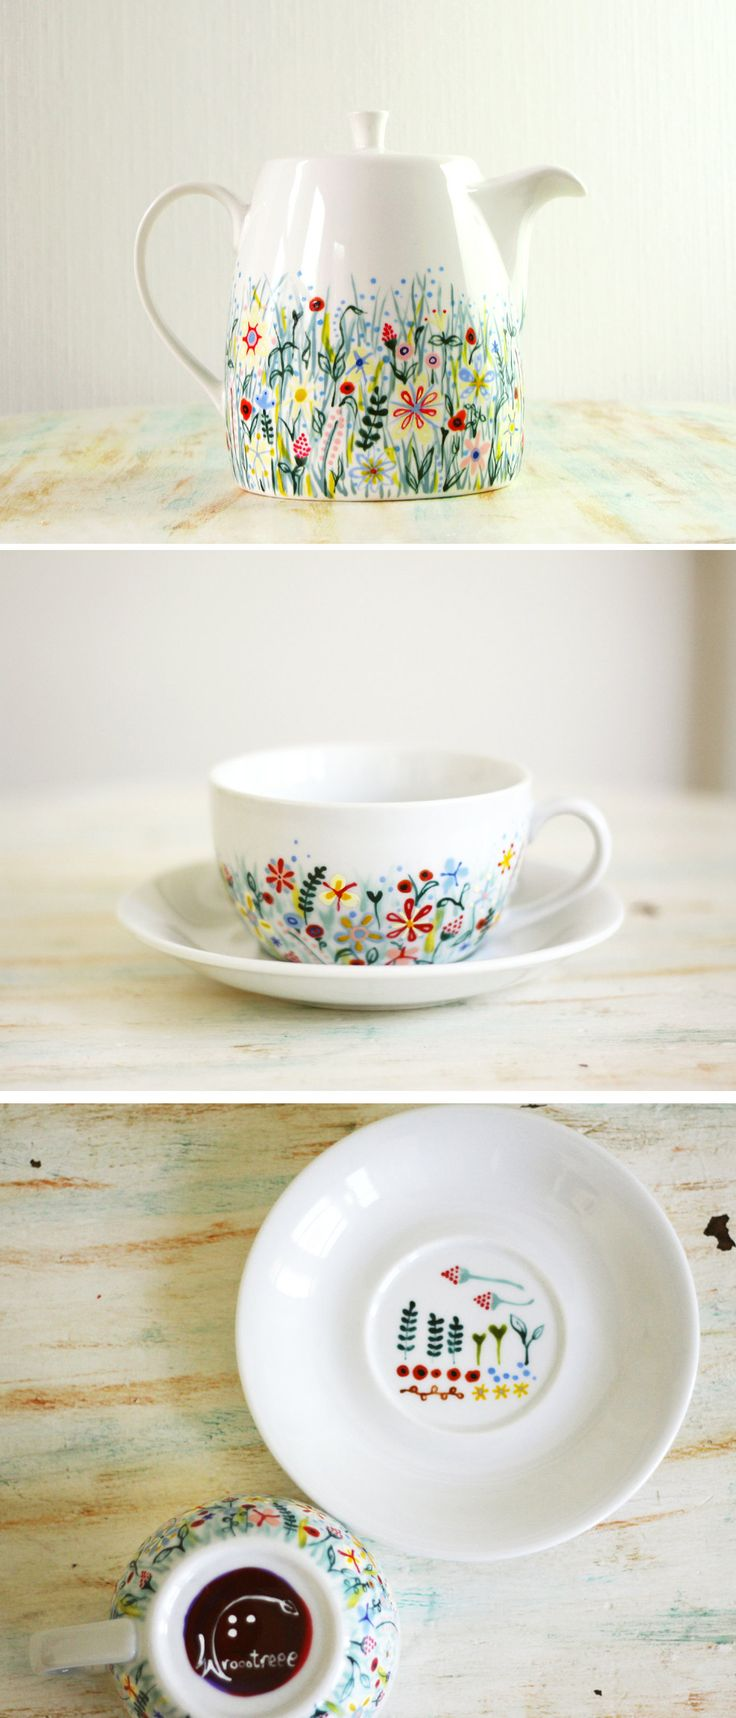 Painted ceramics by roootree | wildflower painting | wildflower | flower pattern | porcelain patterns